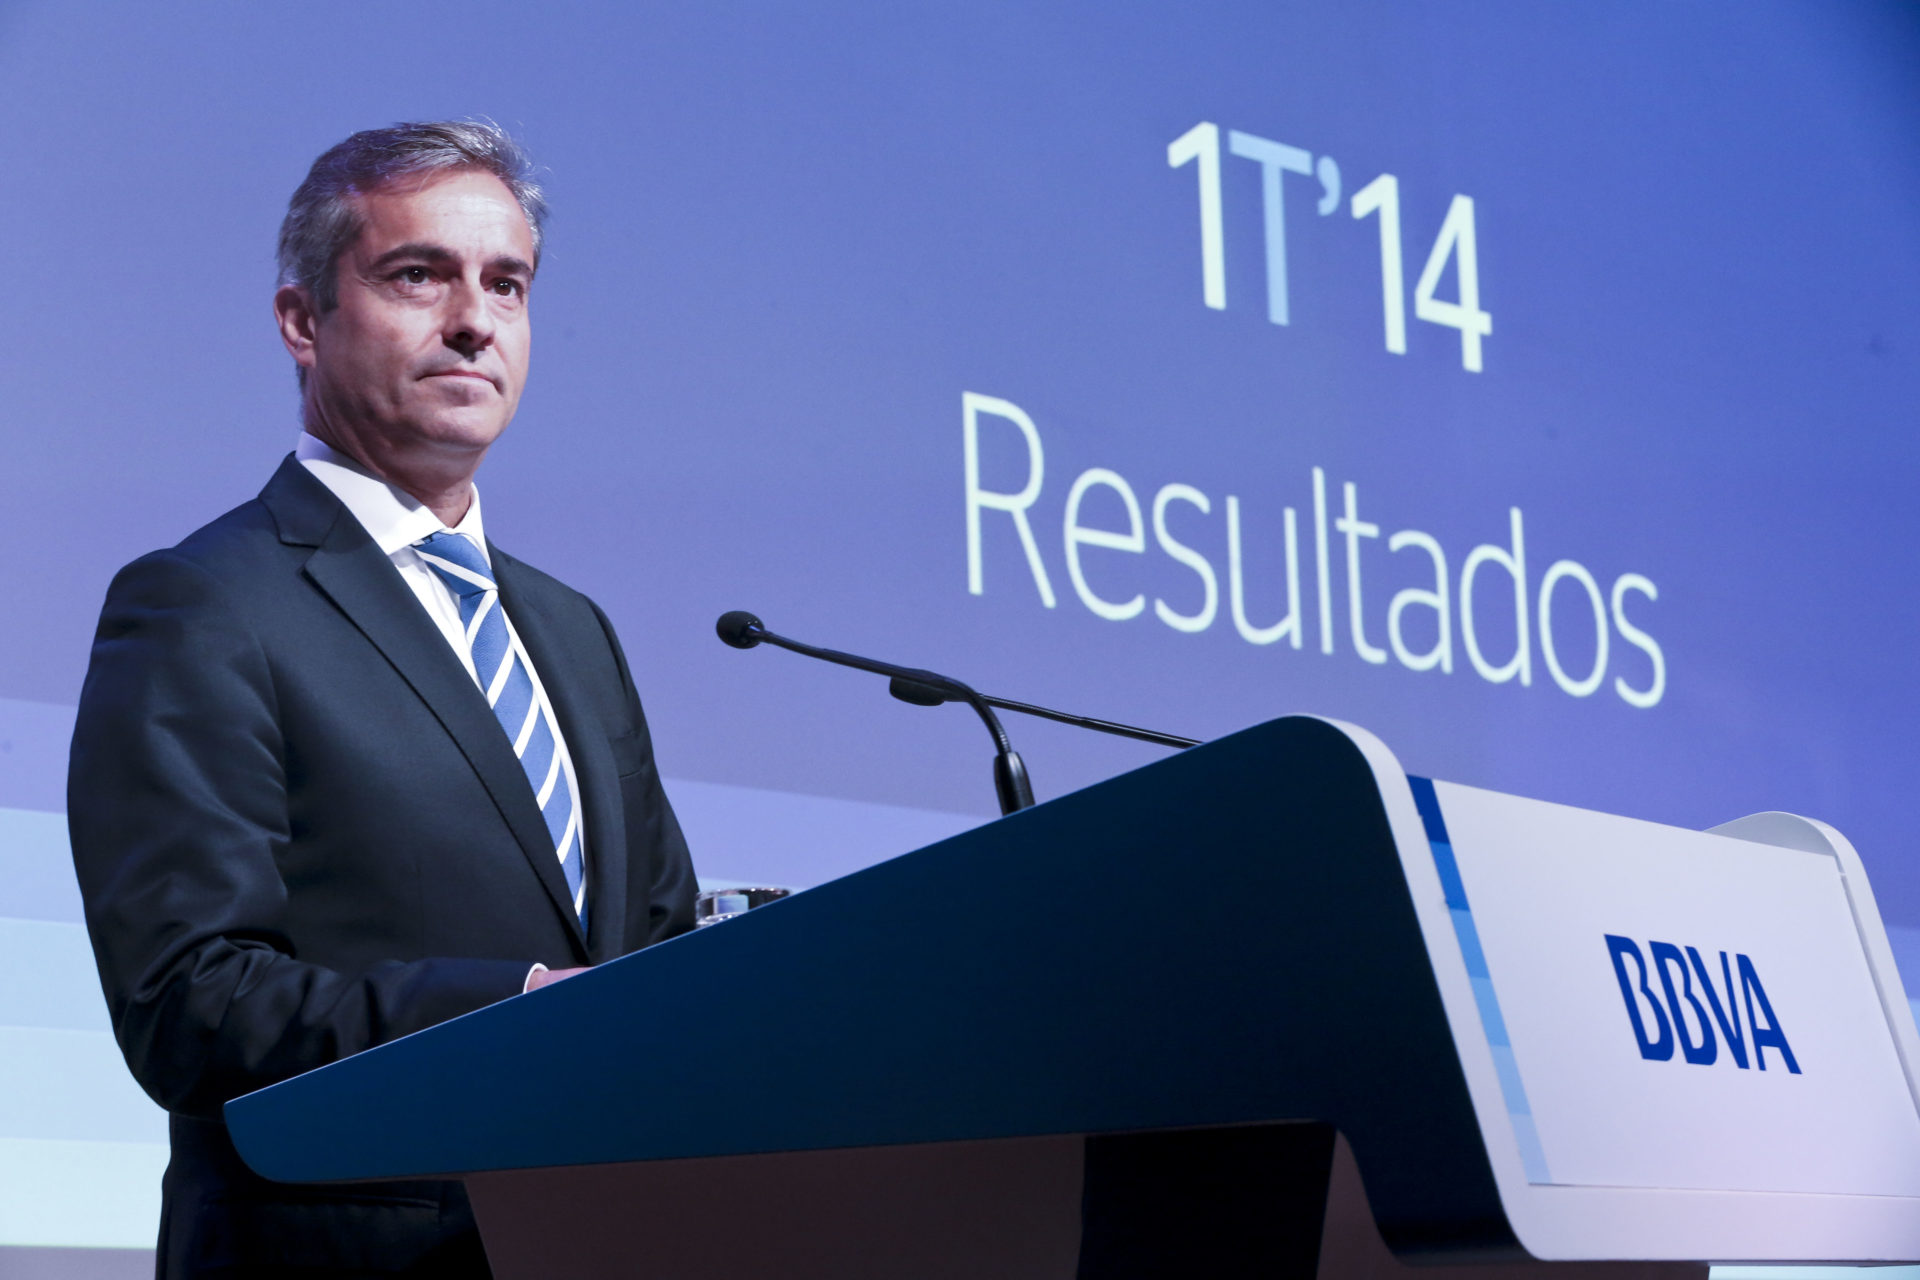 Picture of Ángel Cano. 1Q14 Results